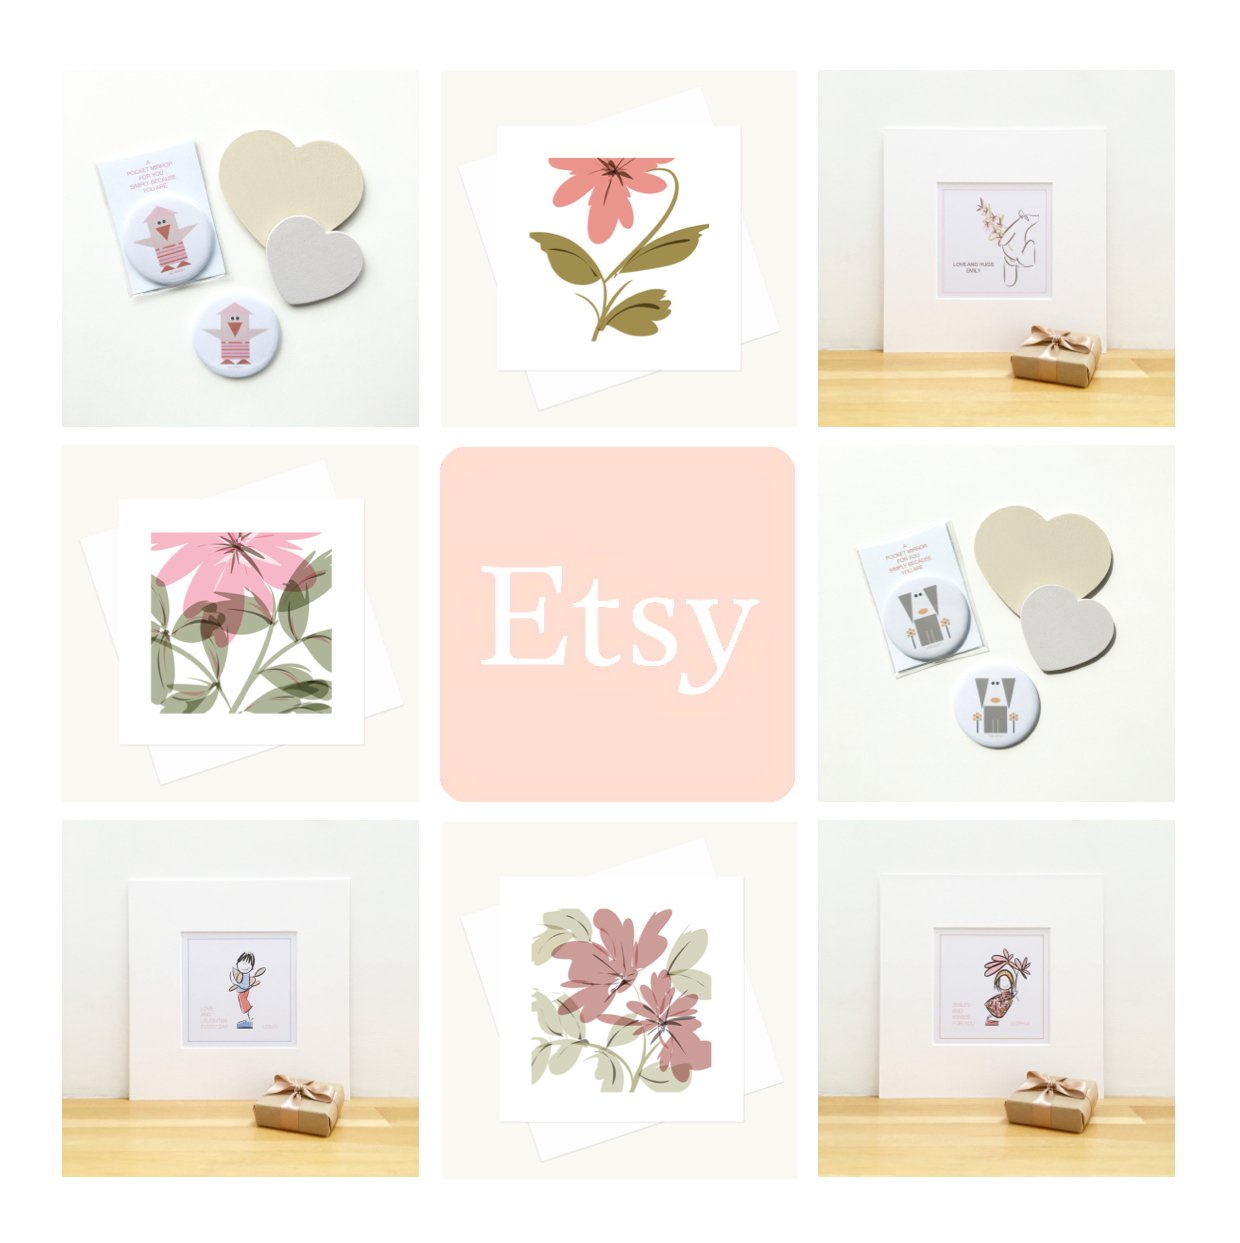 easy shop personalised prints greeting cards